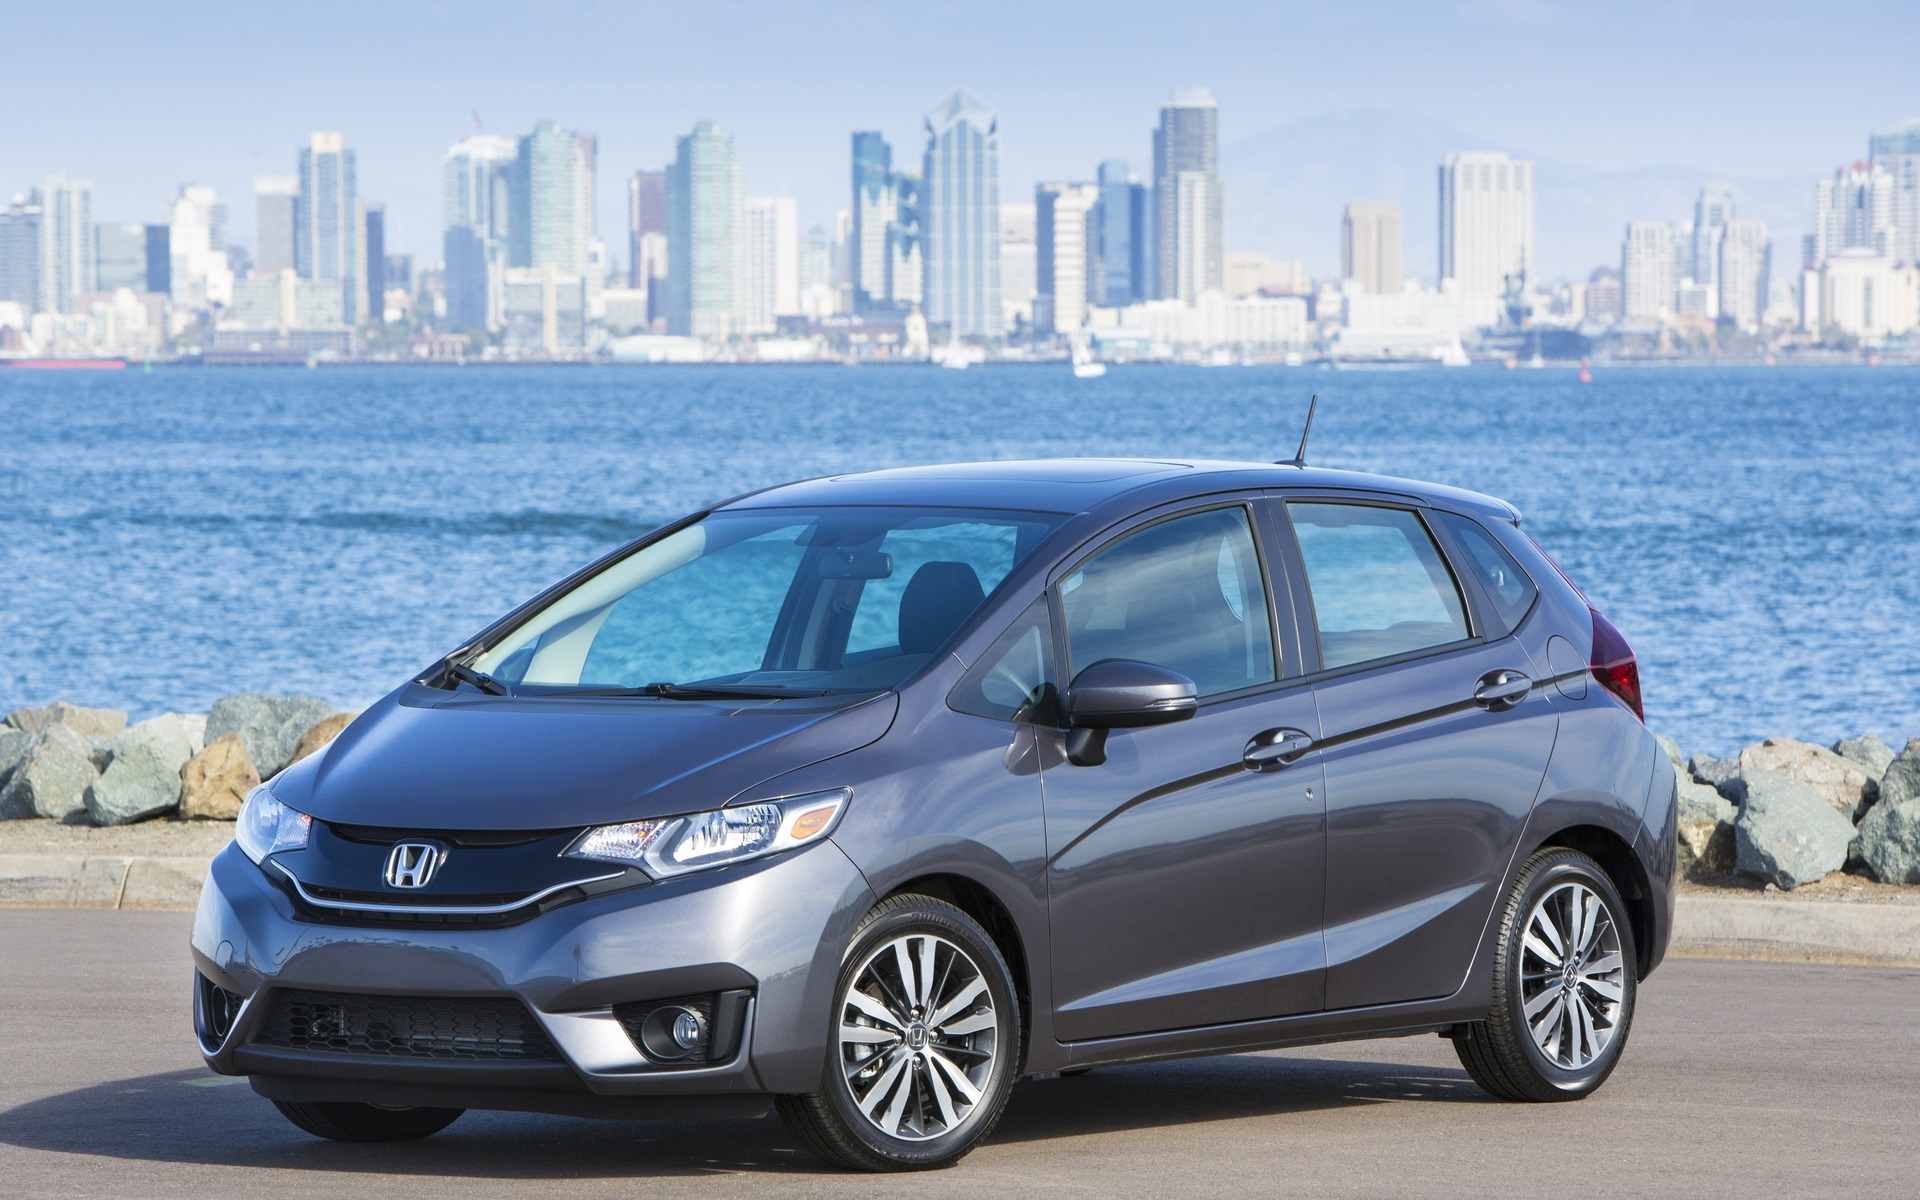 Best subcompact car - The Car Guide / Motoring TV